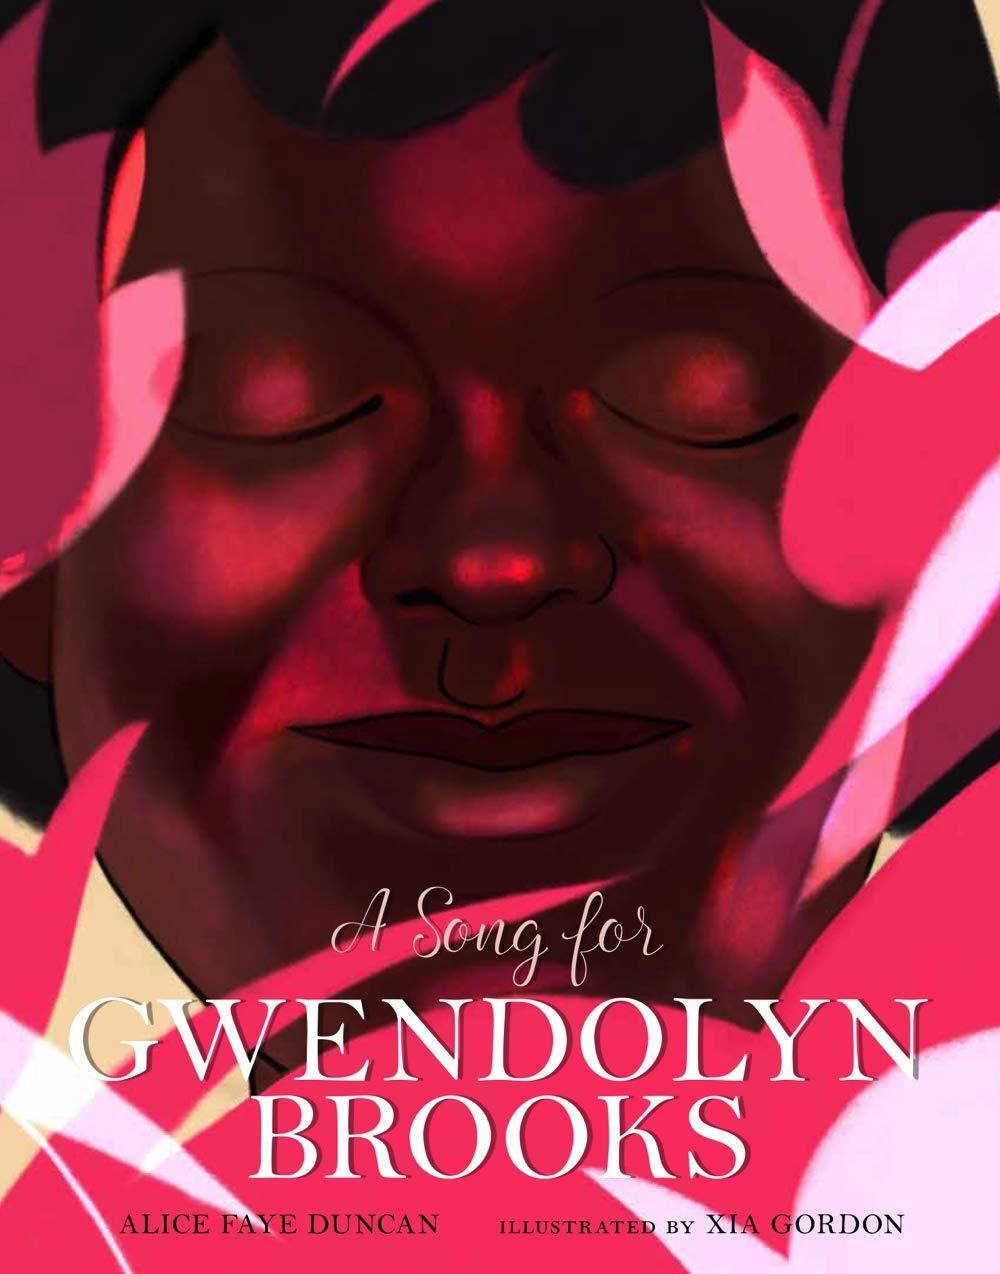 Image of the book cover A Song for Gwendolyn Brooks